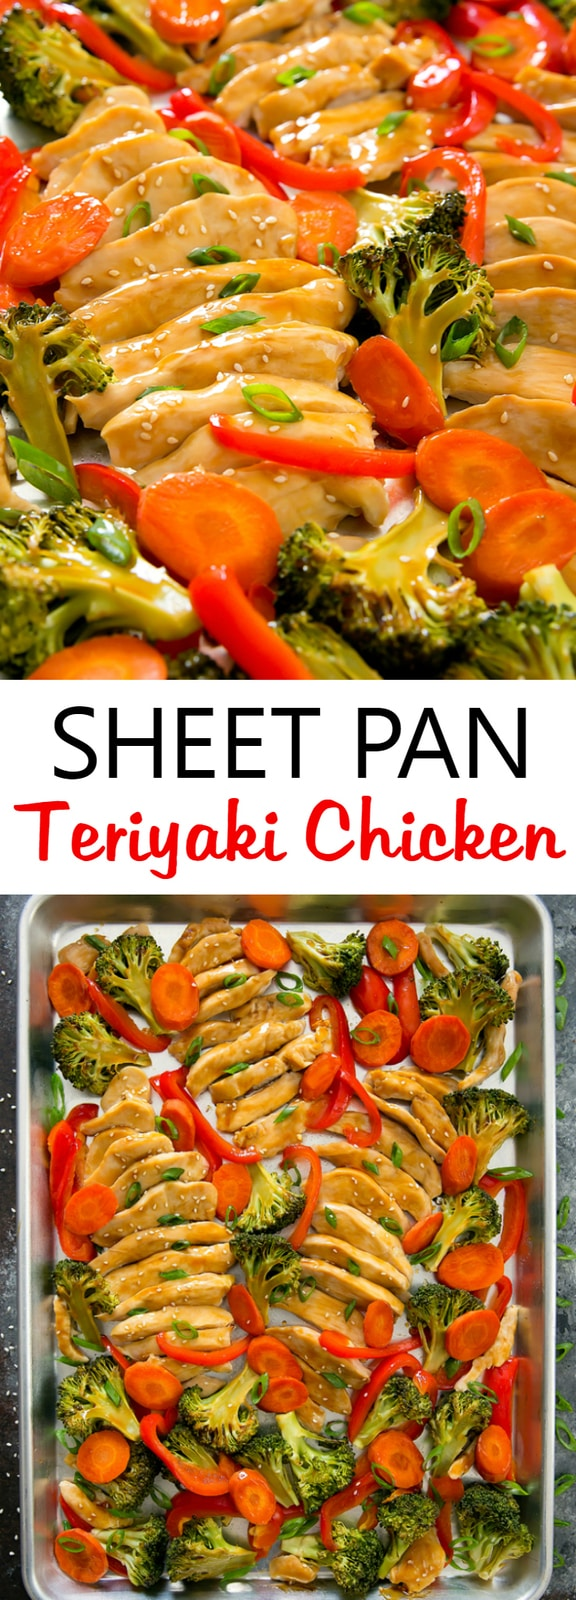 Sheet Pan Teriyaki Chicken. Everything cooks in one pan and is ready in less than 30 minutes.